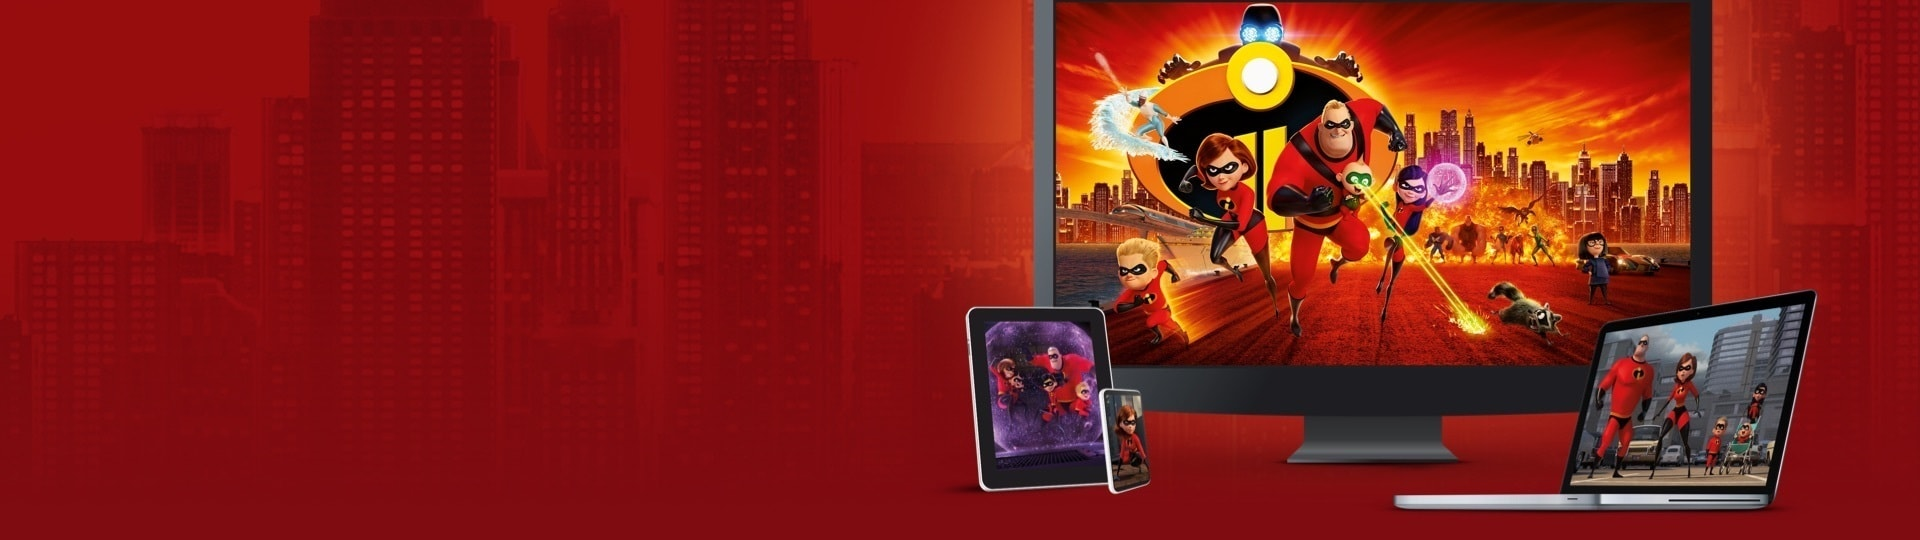 The Incredibles 2 os Super Herois | Disponible para descargar y disfrutar